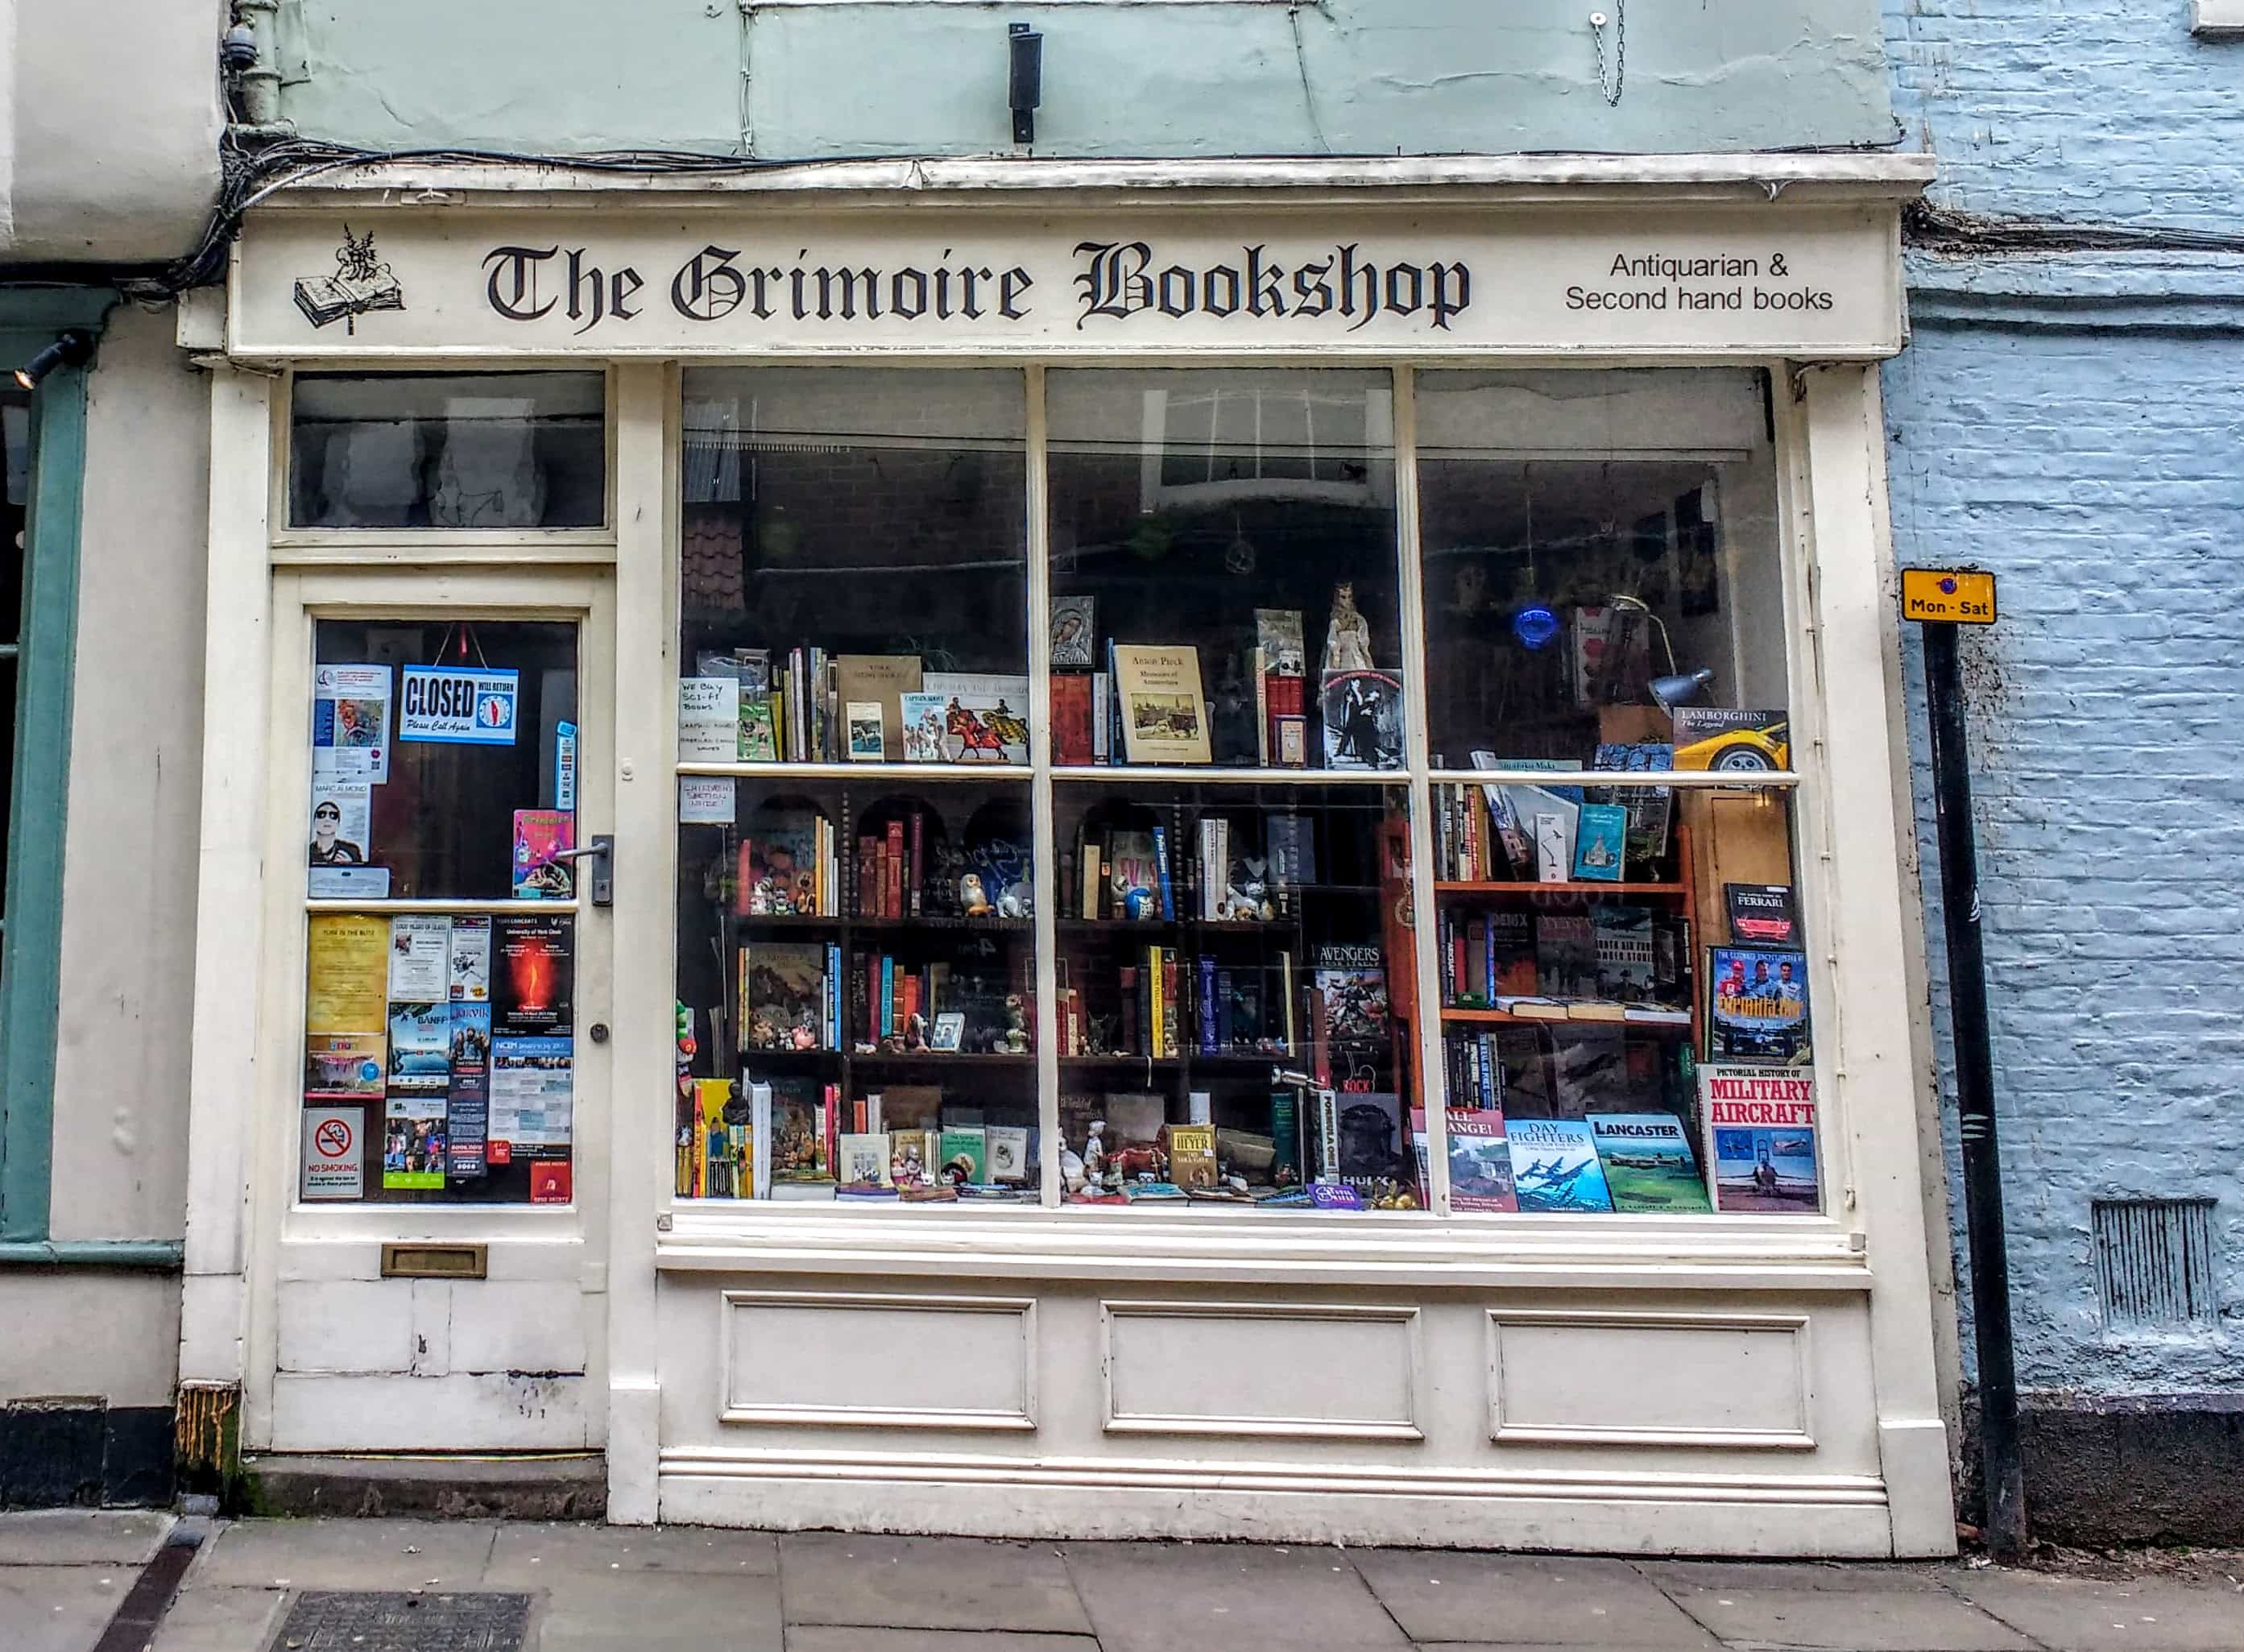 the grimoire bookshop THE sHAMBLES